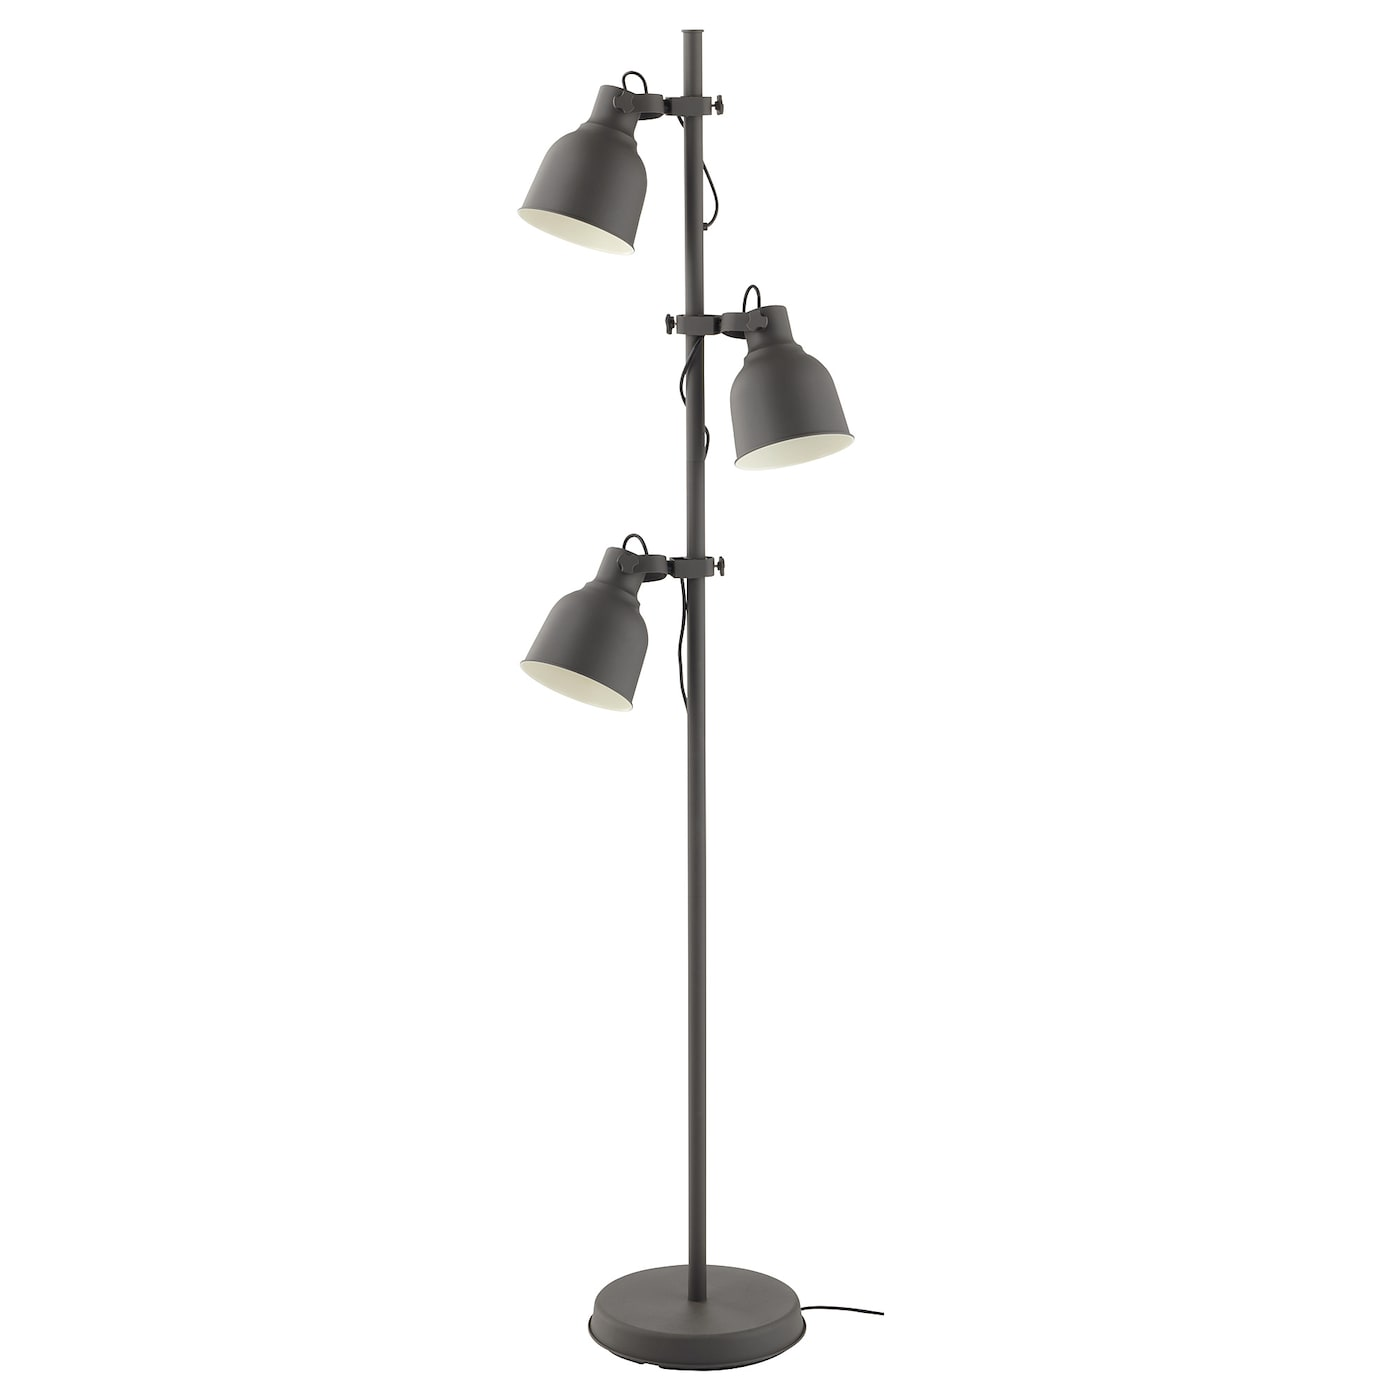 IKEA HEKTAR floor lamp with 3-spot The height is adjustable to suit your lighting needs.